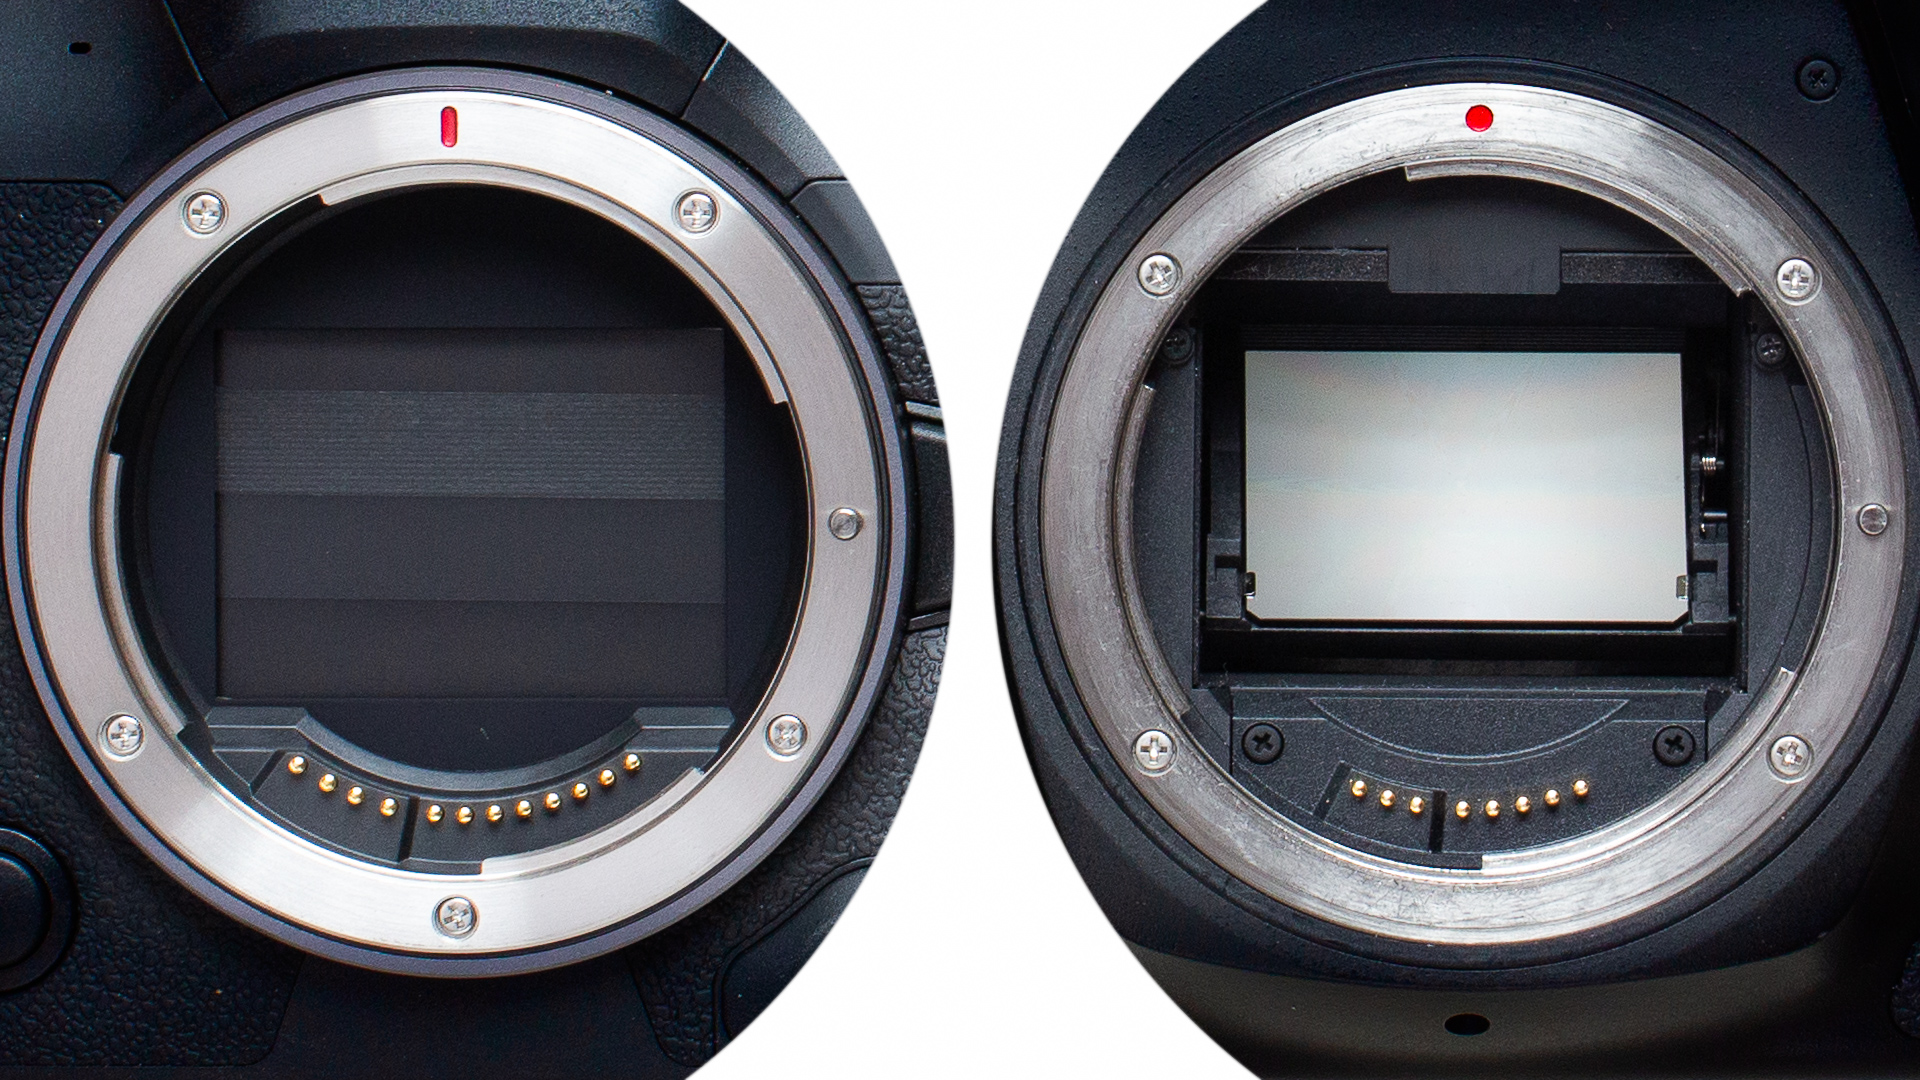 Comparing digital single-lens reflex (DSLR) and mirrorless cameras. Which one is right for you?